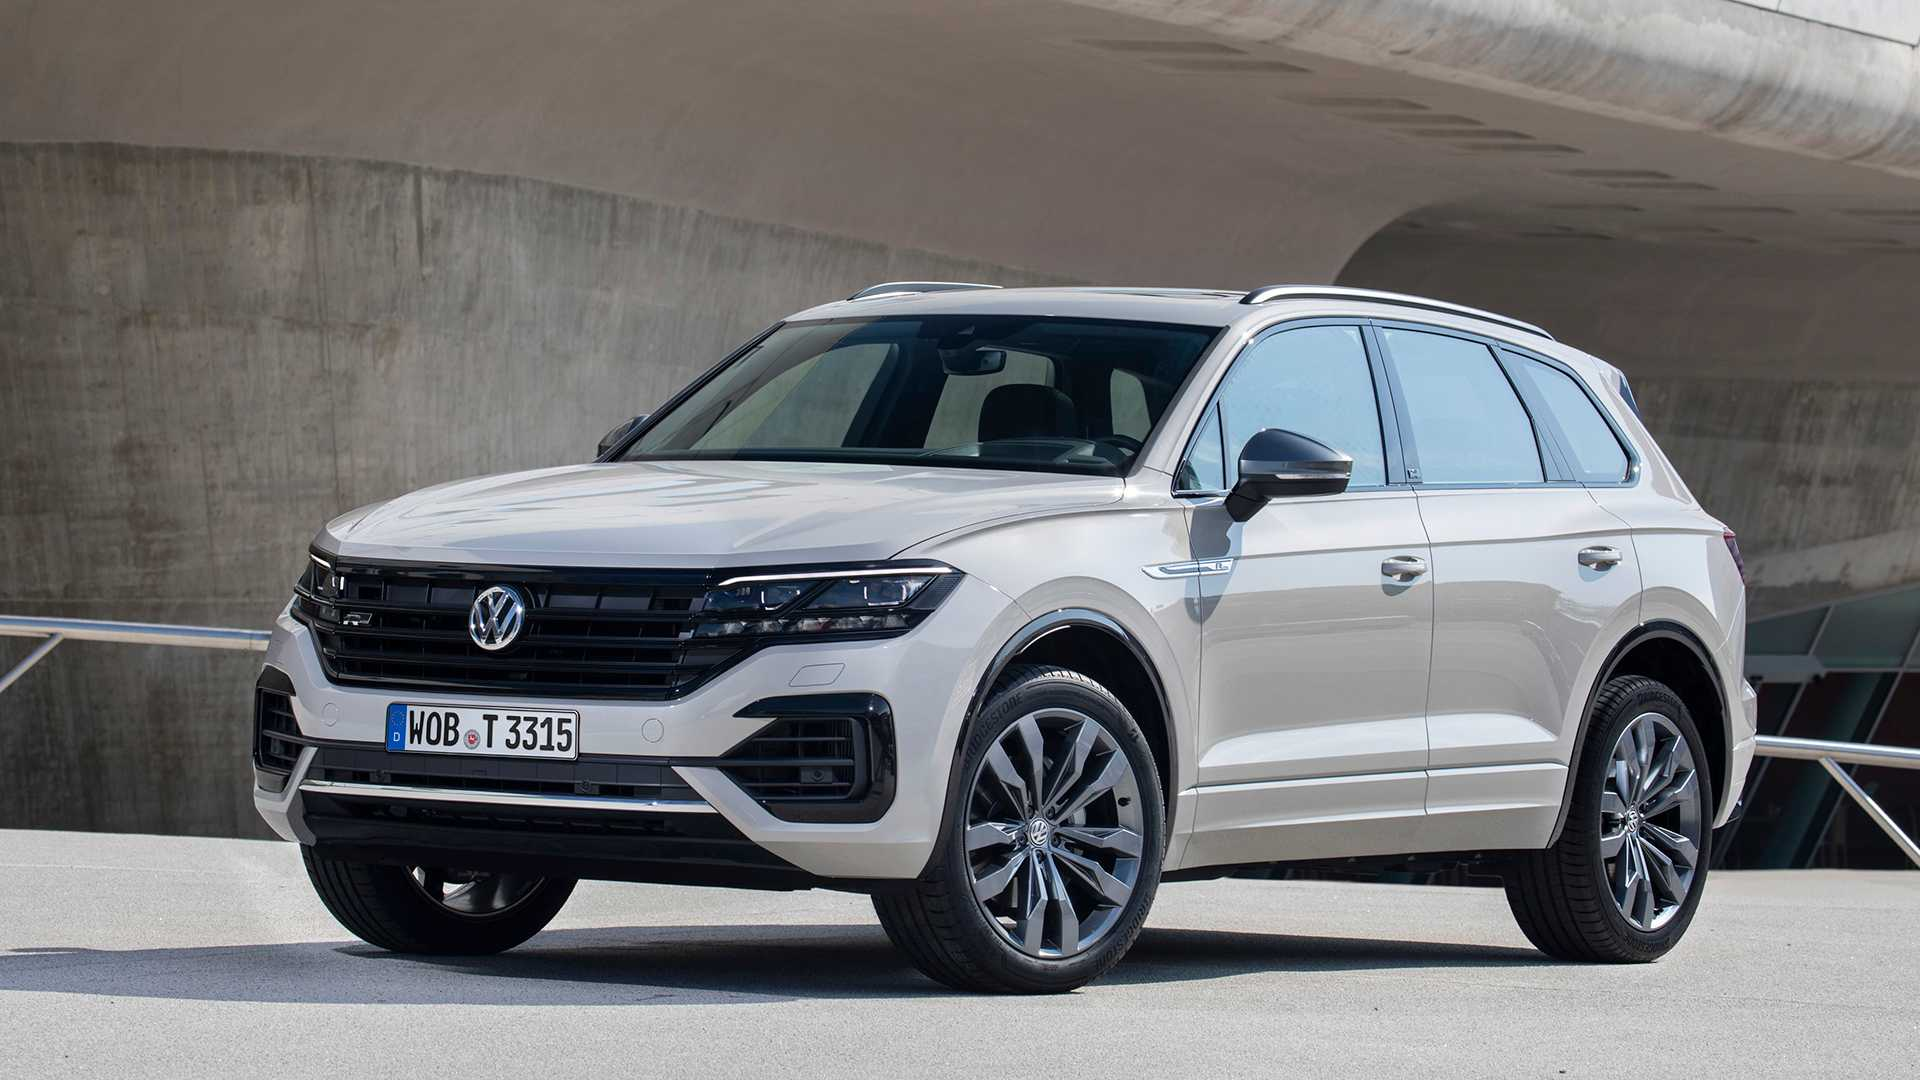 vw touareg r officially announced as plug in hybrid hot suv vw touareg r officially announced as